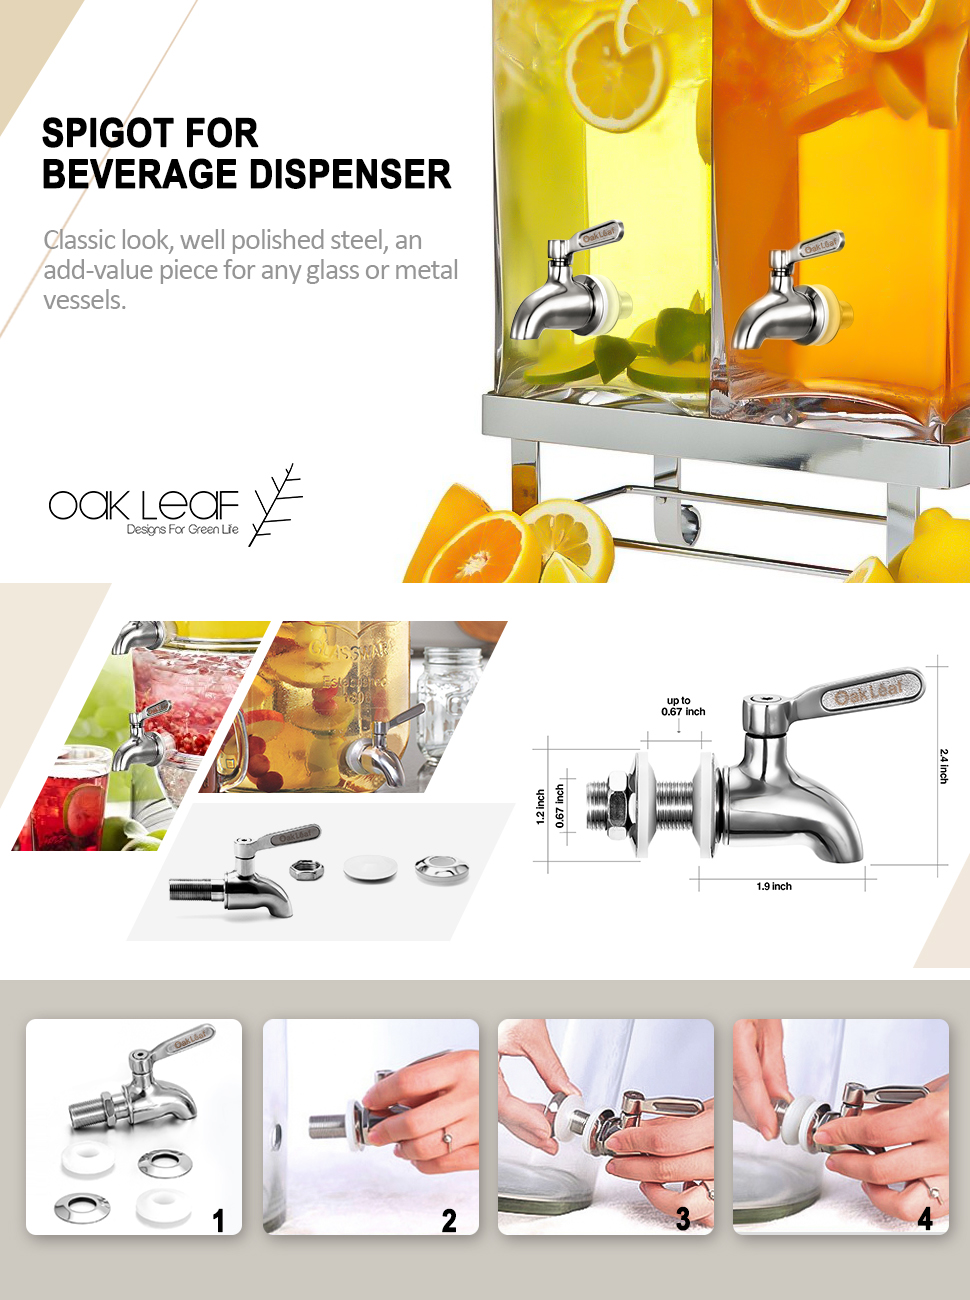 Discover Card Designs And Replacement - Beverage dispenser replacement spigot